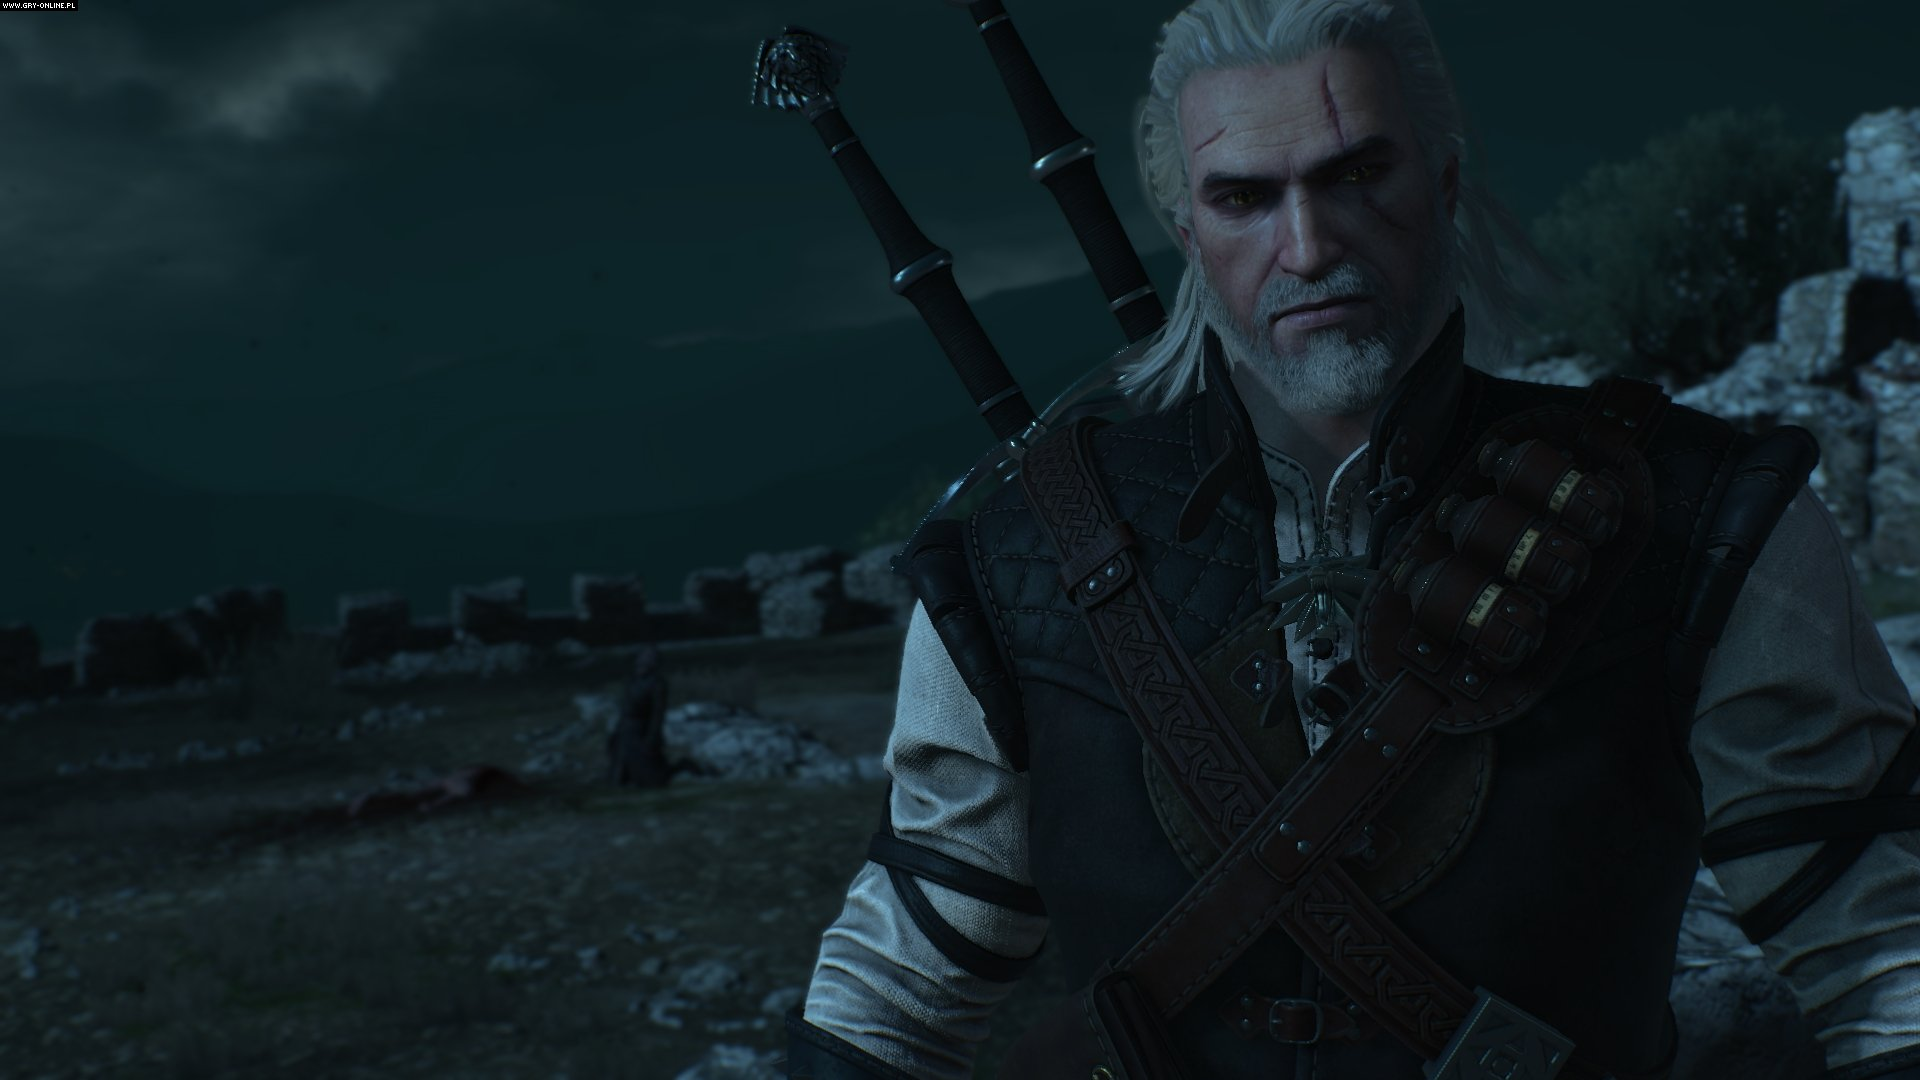 The Witcher 3: Blood and Wine PC, XONE, PS4 Games Image 8/47, CD Projekt RED, Bandai Namco Entertainment